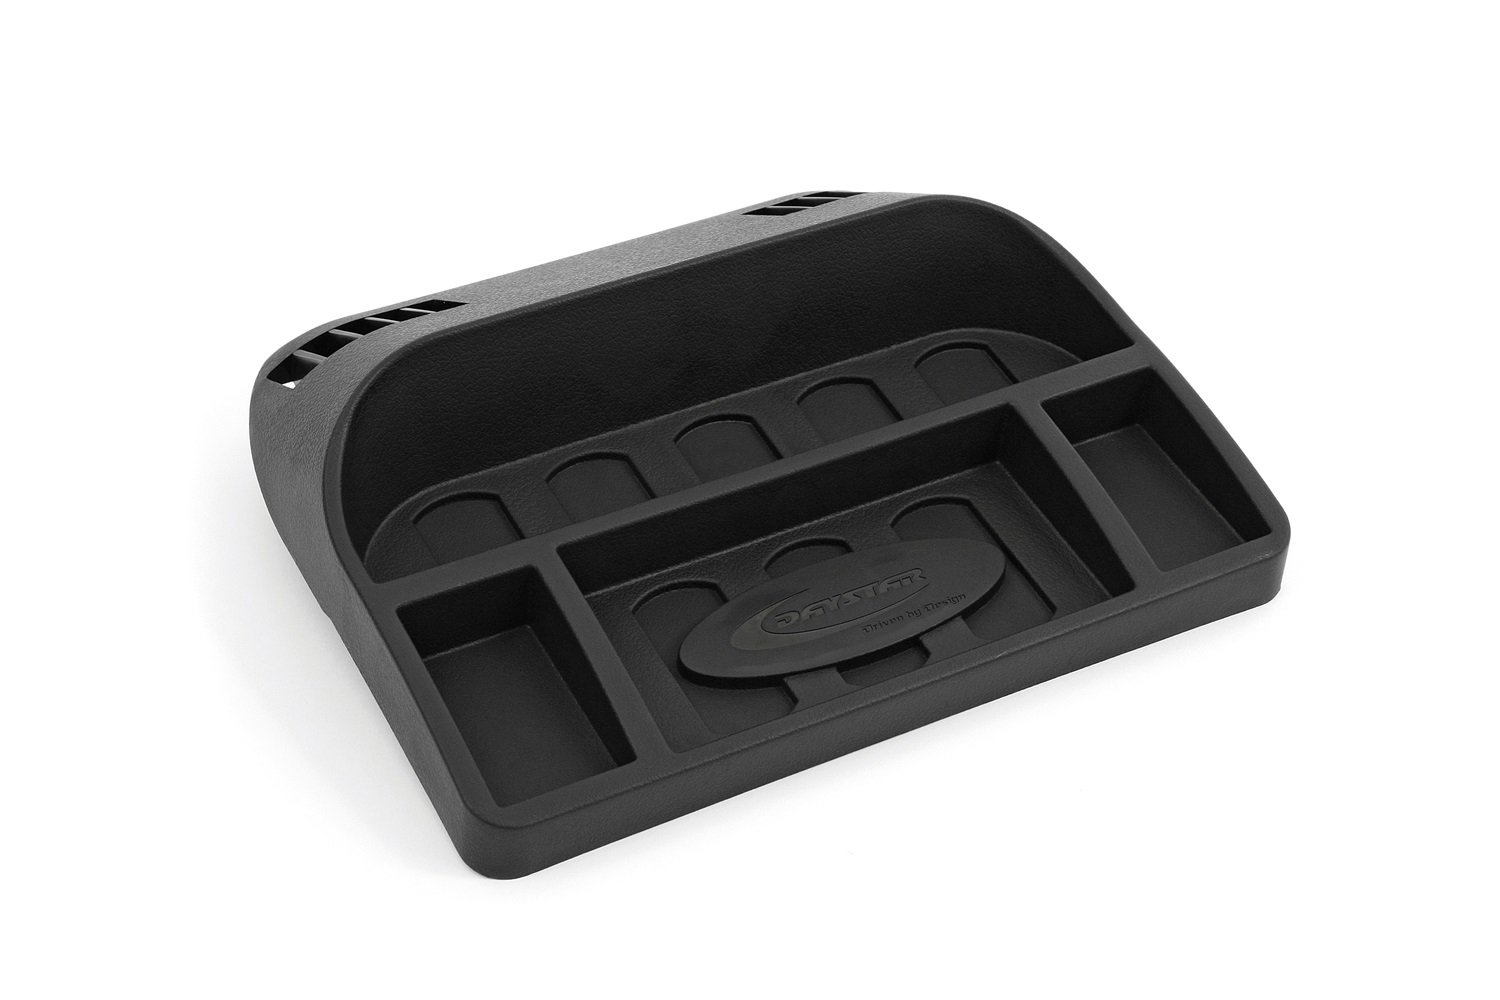 Daystar, Hummer H3 and H3T Upper dash panel, secure your items and create usable space on your dash, fits 2004 to 2010 2/4WD, KG09113 - Black